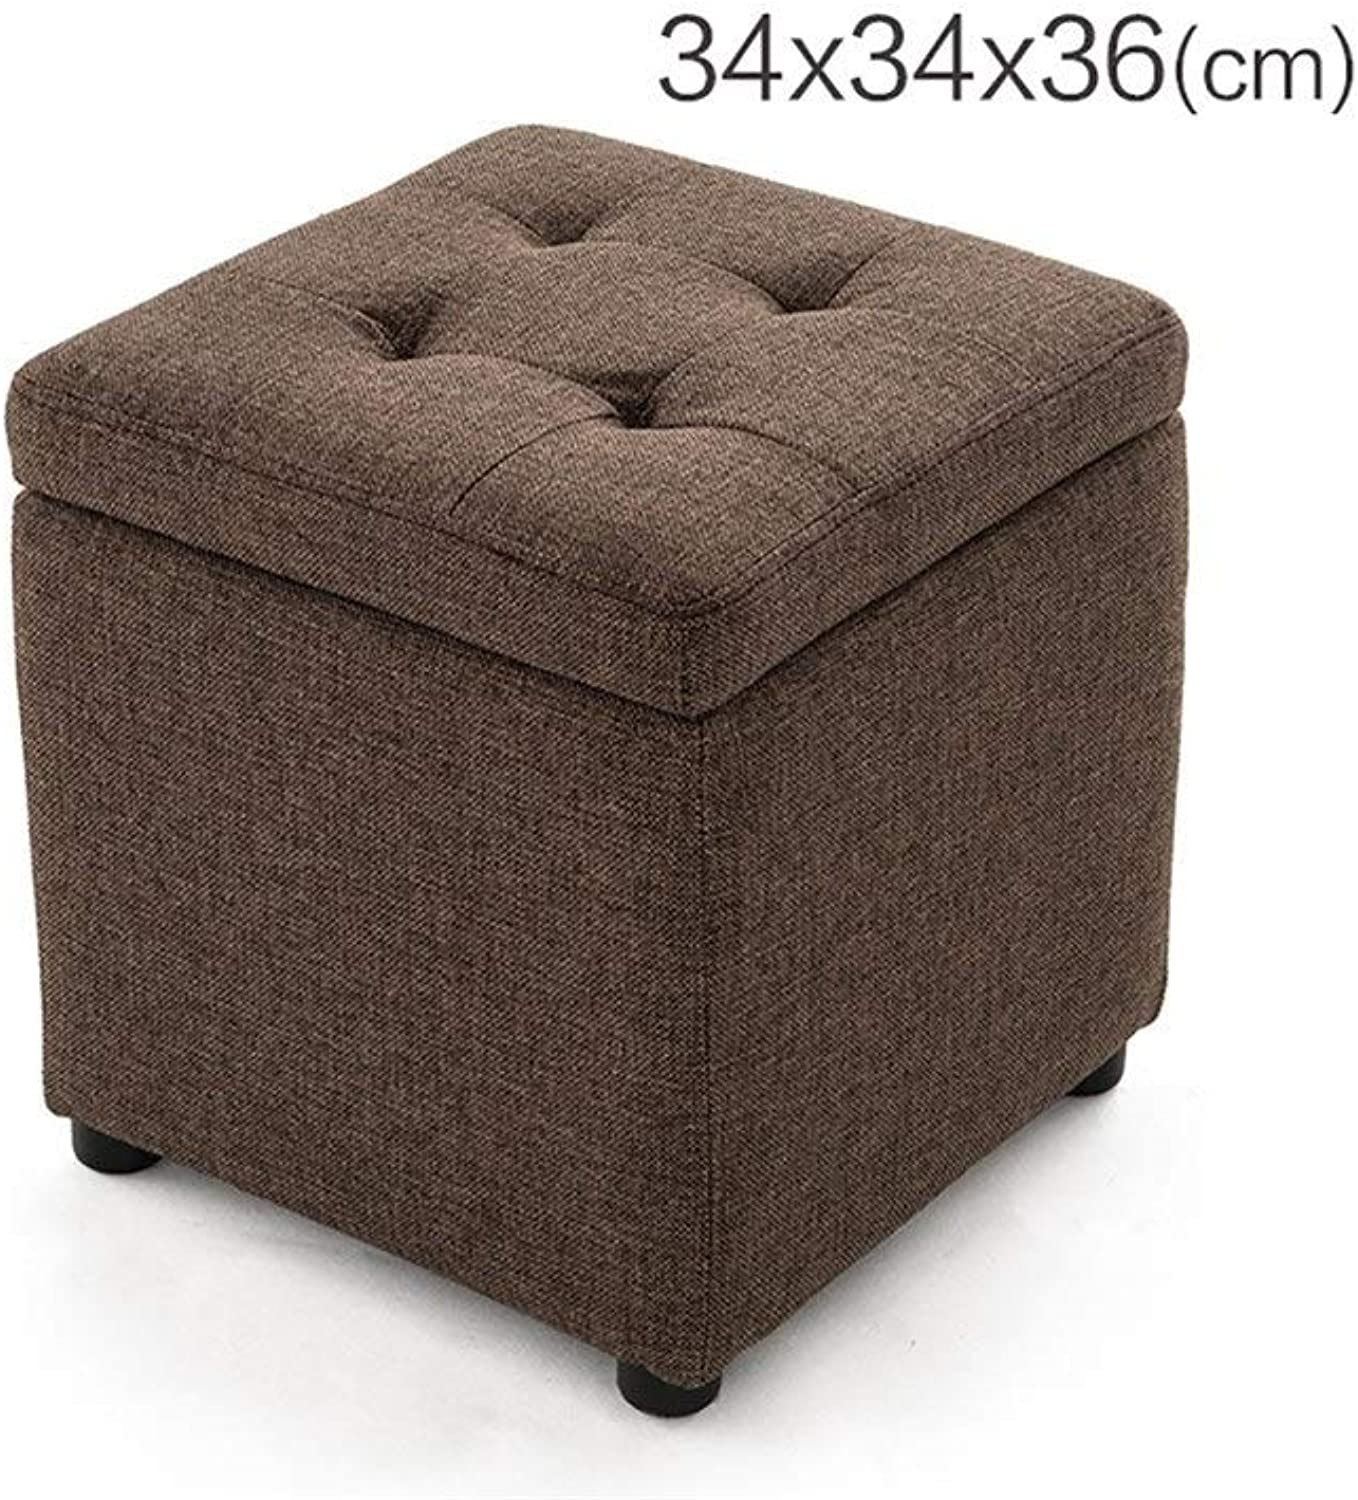 AJZGF Admission Stool Bench Stool Dianzi Sofa Stool Storage Stool Stool Footstool - Small Stool (color   B, Size   34  34  36cm)